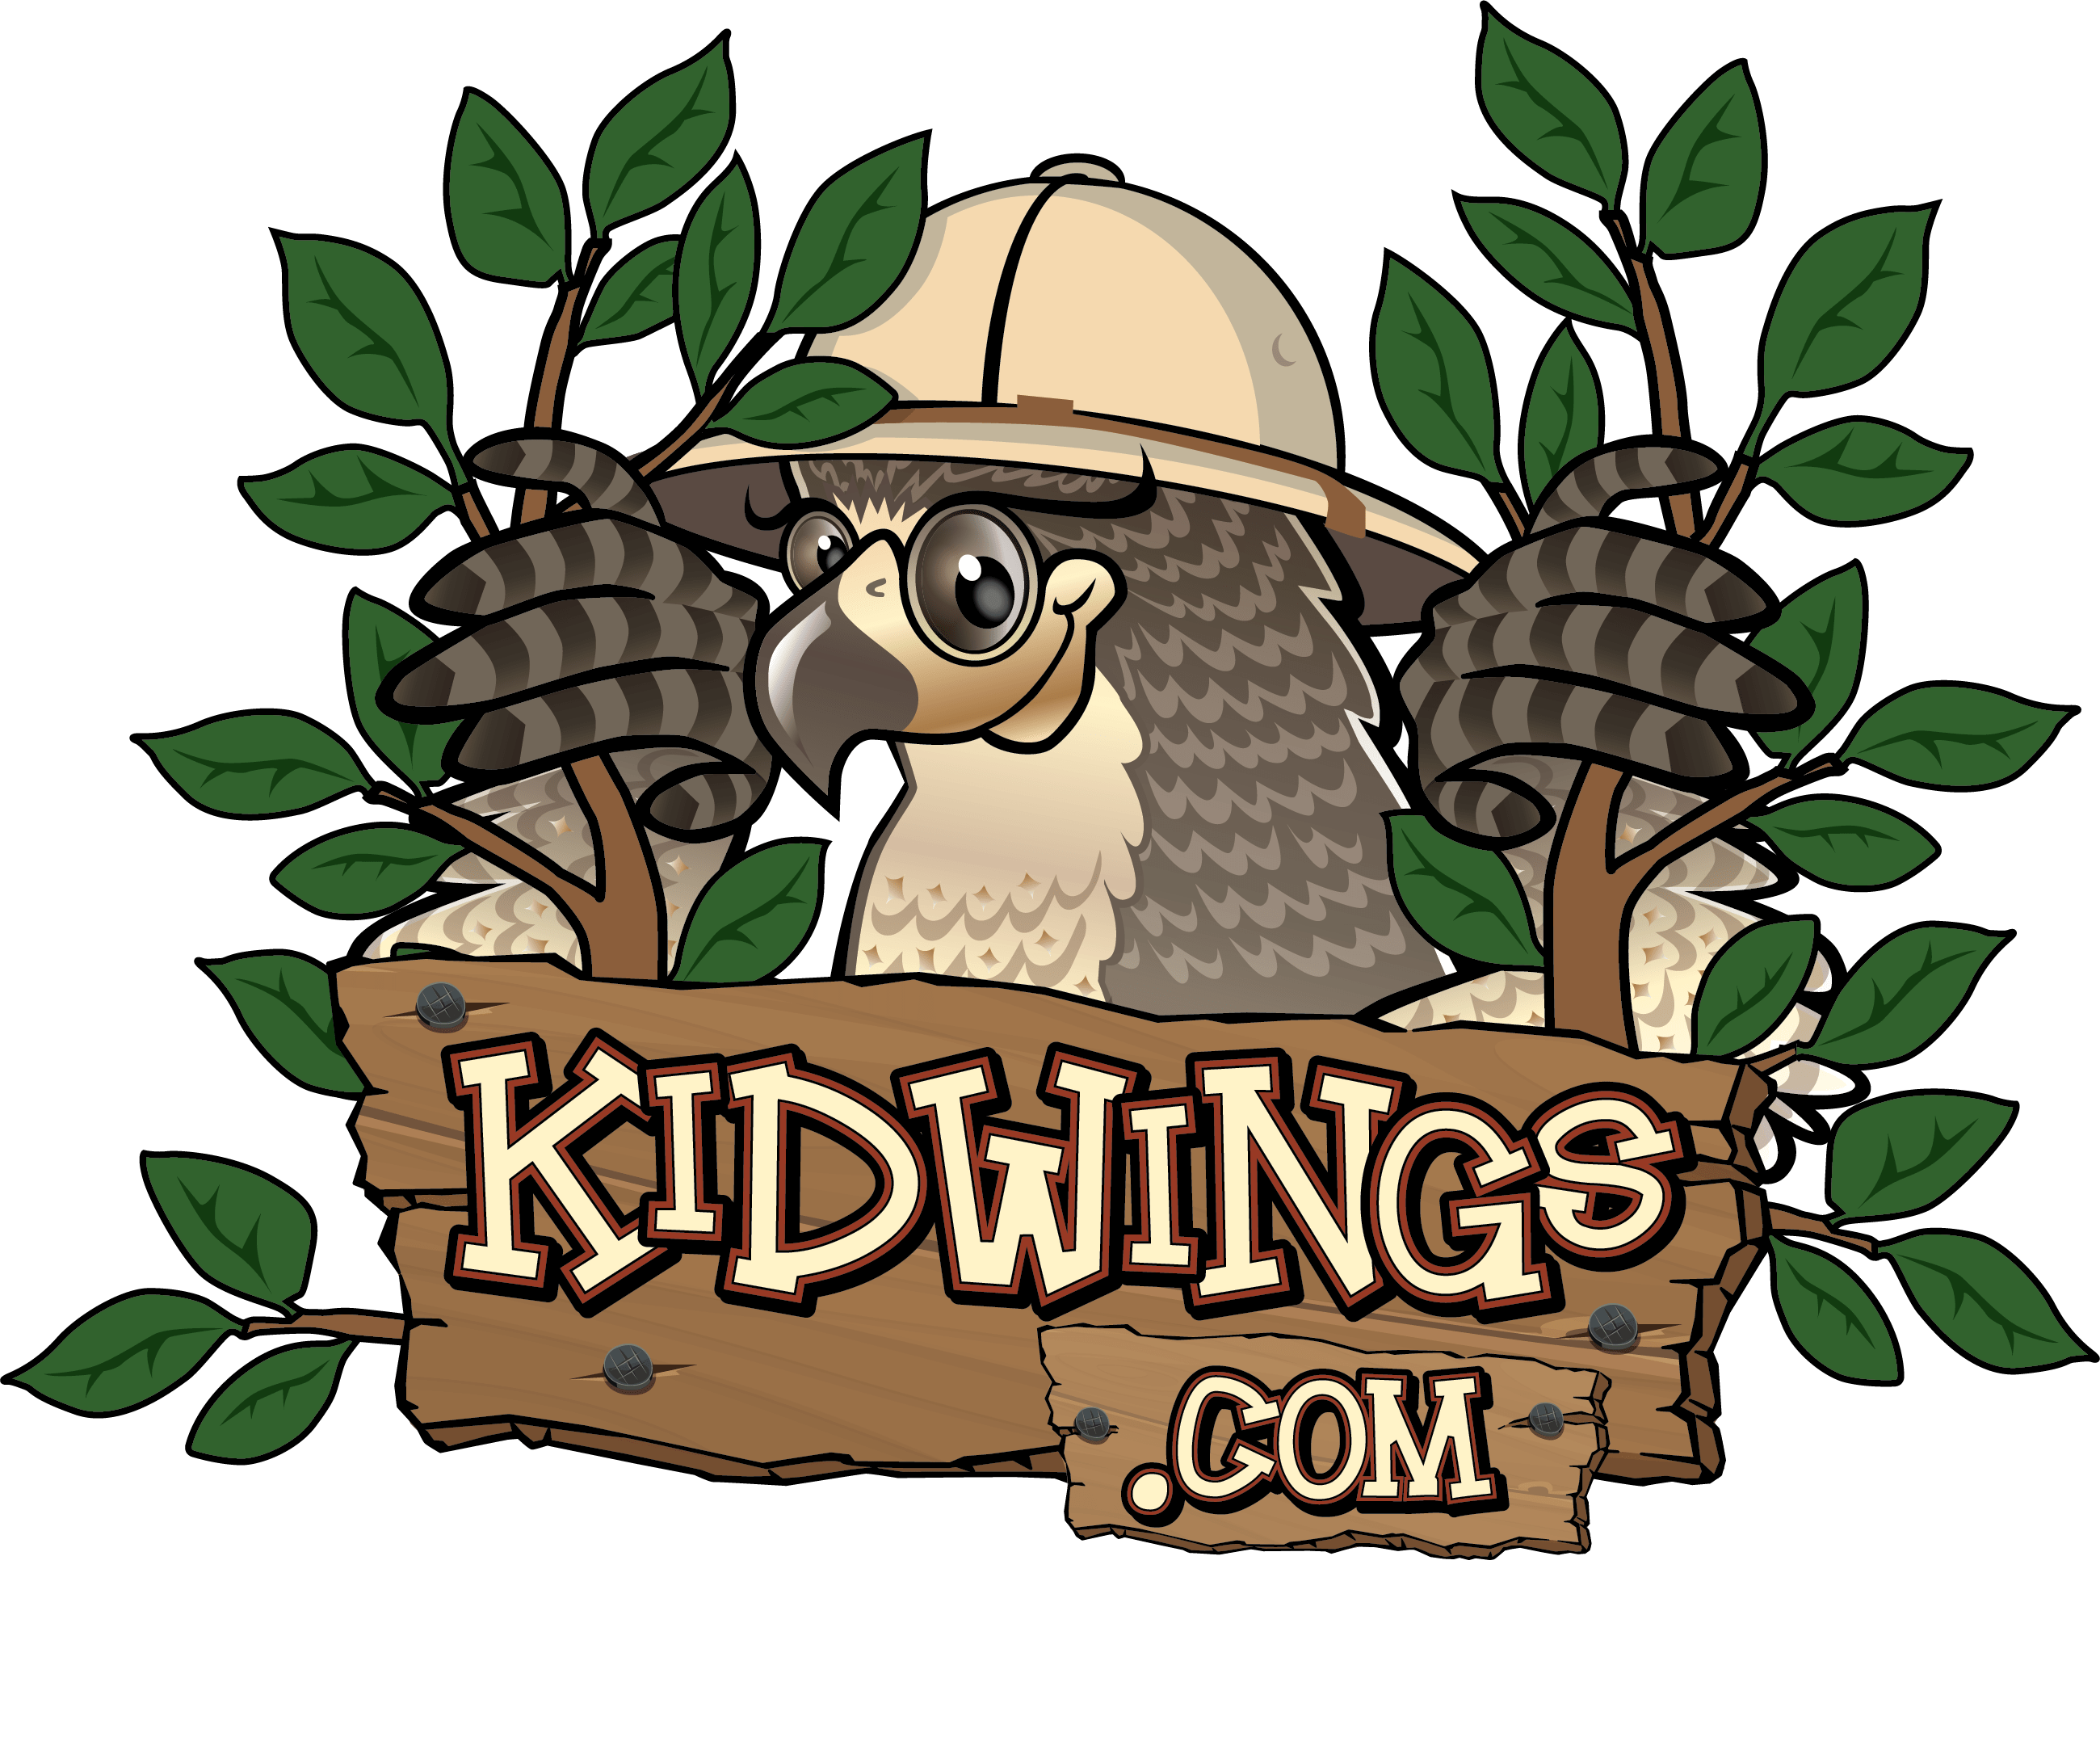 Pellet Kw Kidwings Owl Pellet Dissection And Owl Information For Kids